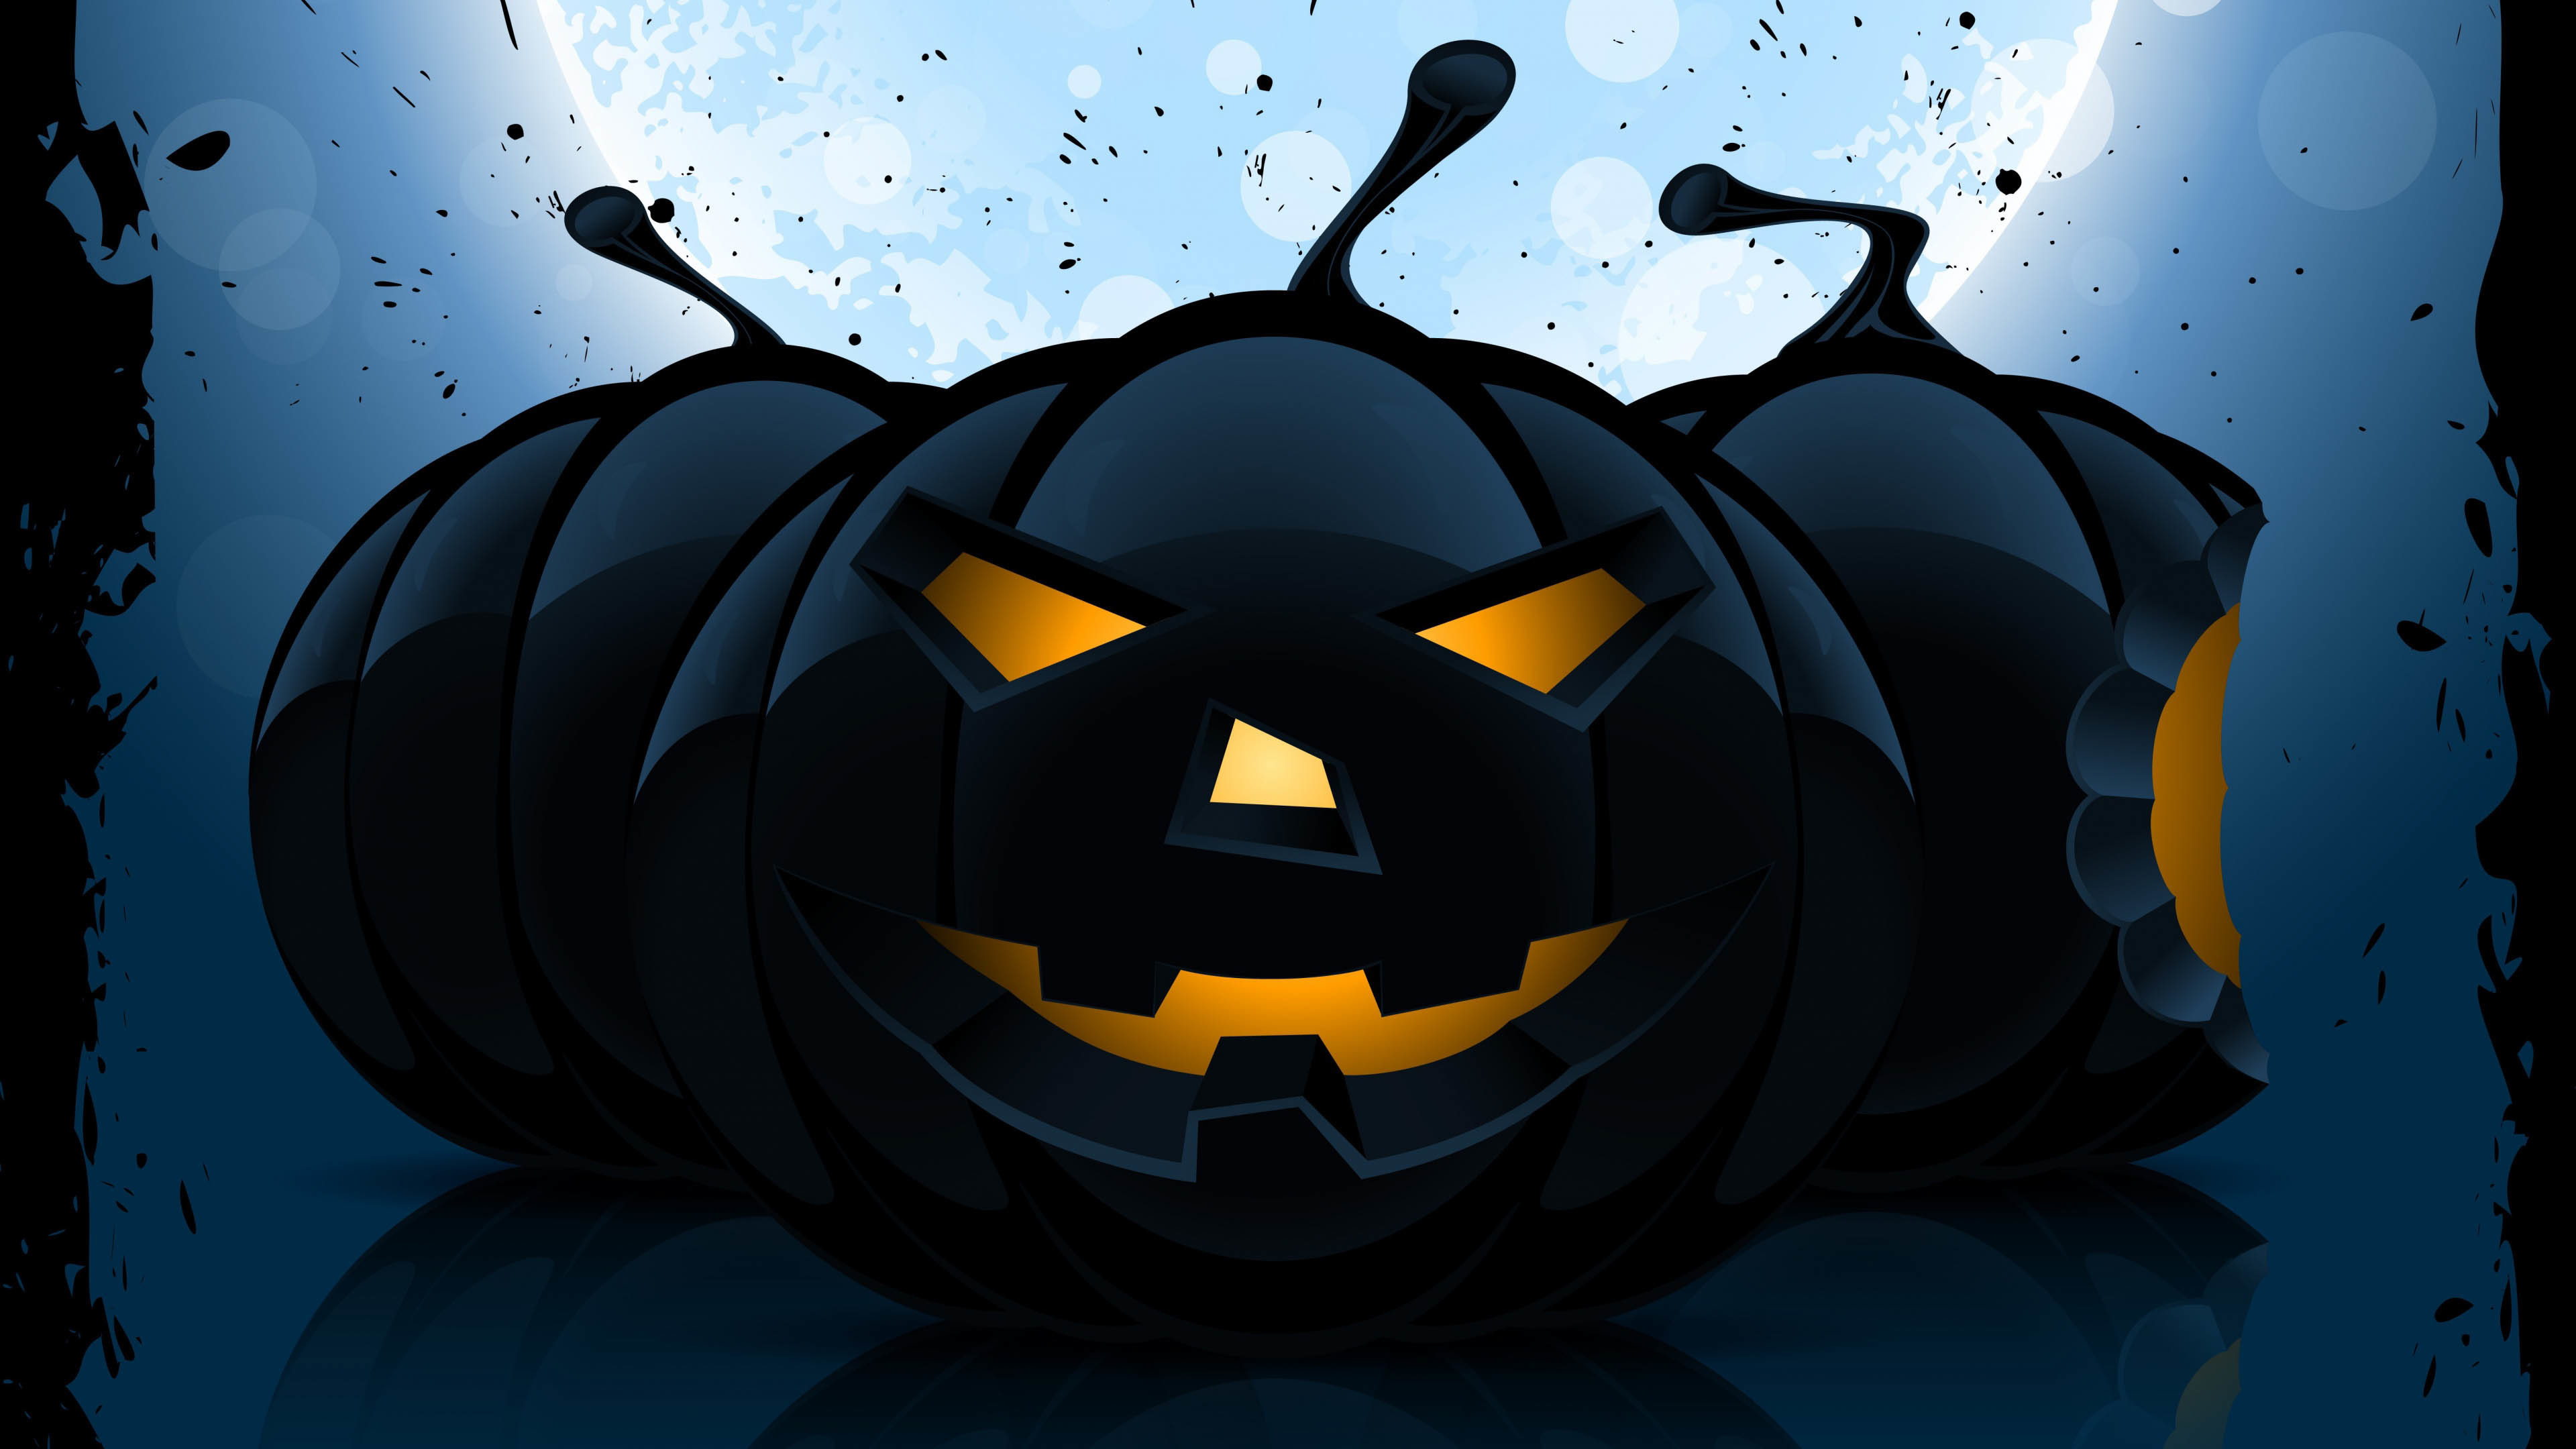 3840x2160 Halloween Pumpkin in the Dark  wallpaper